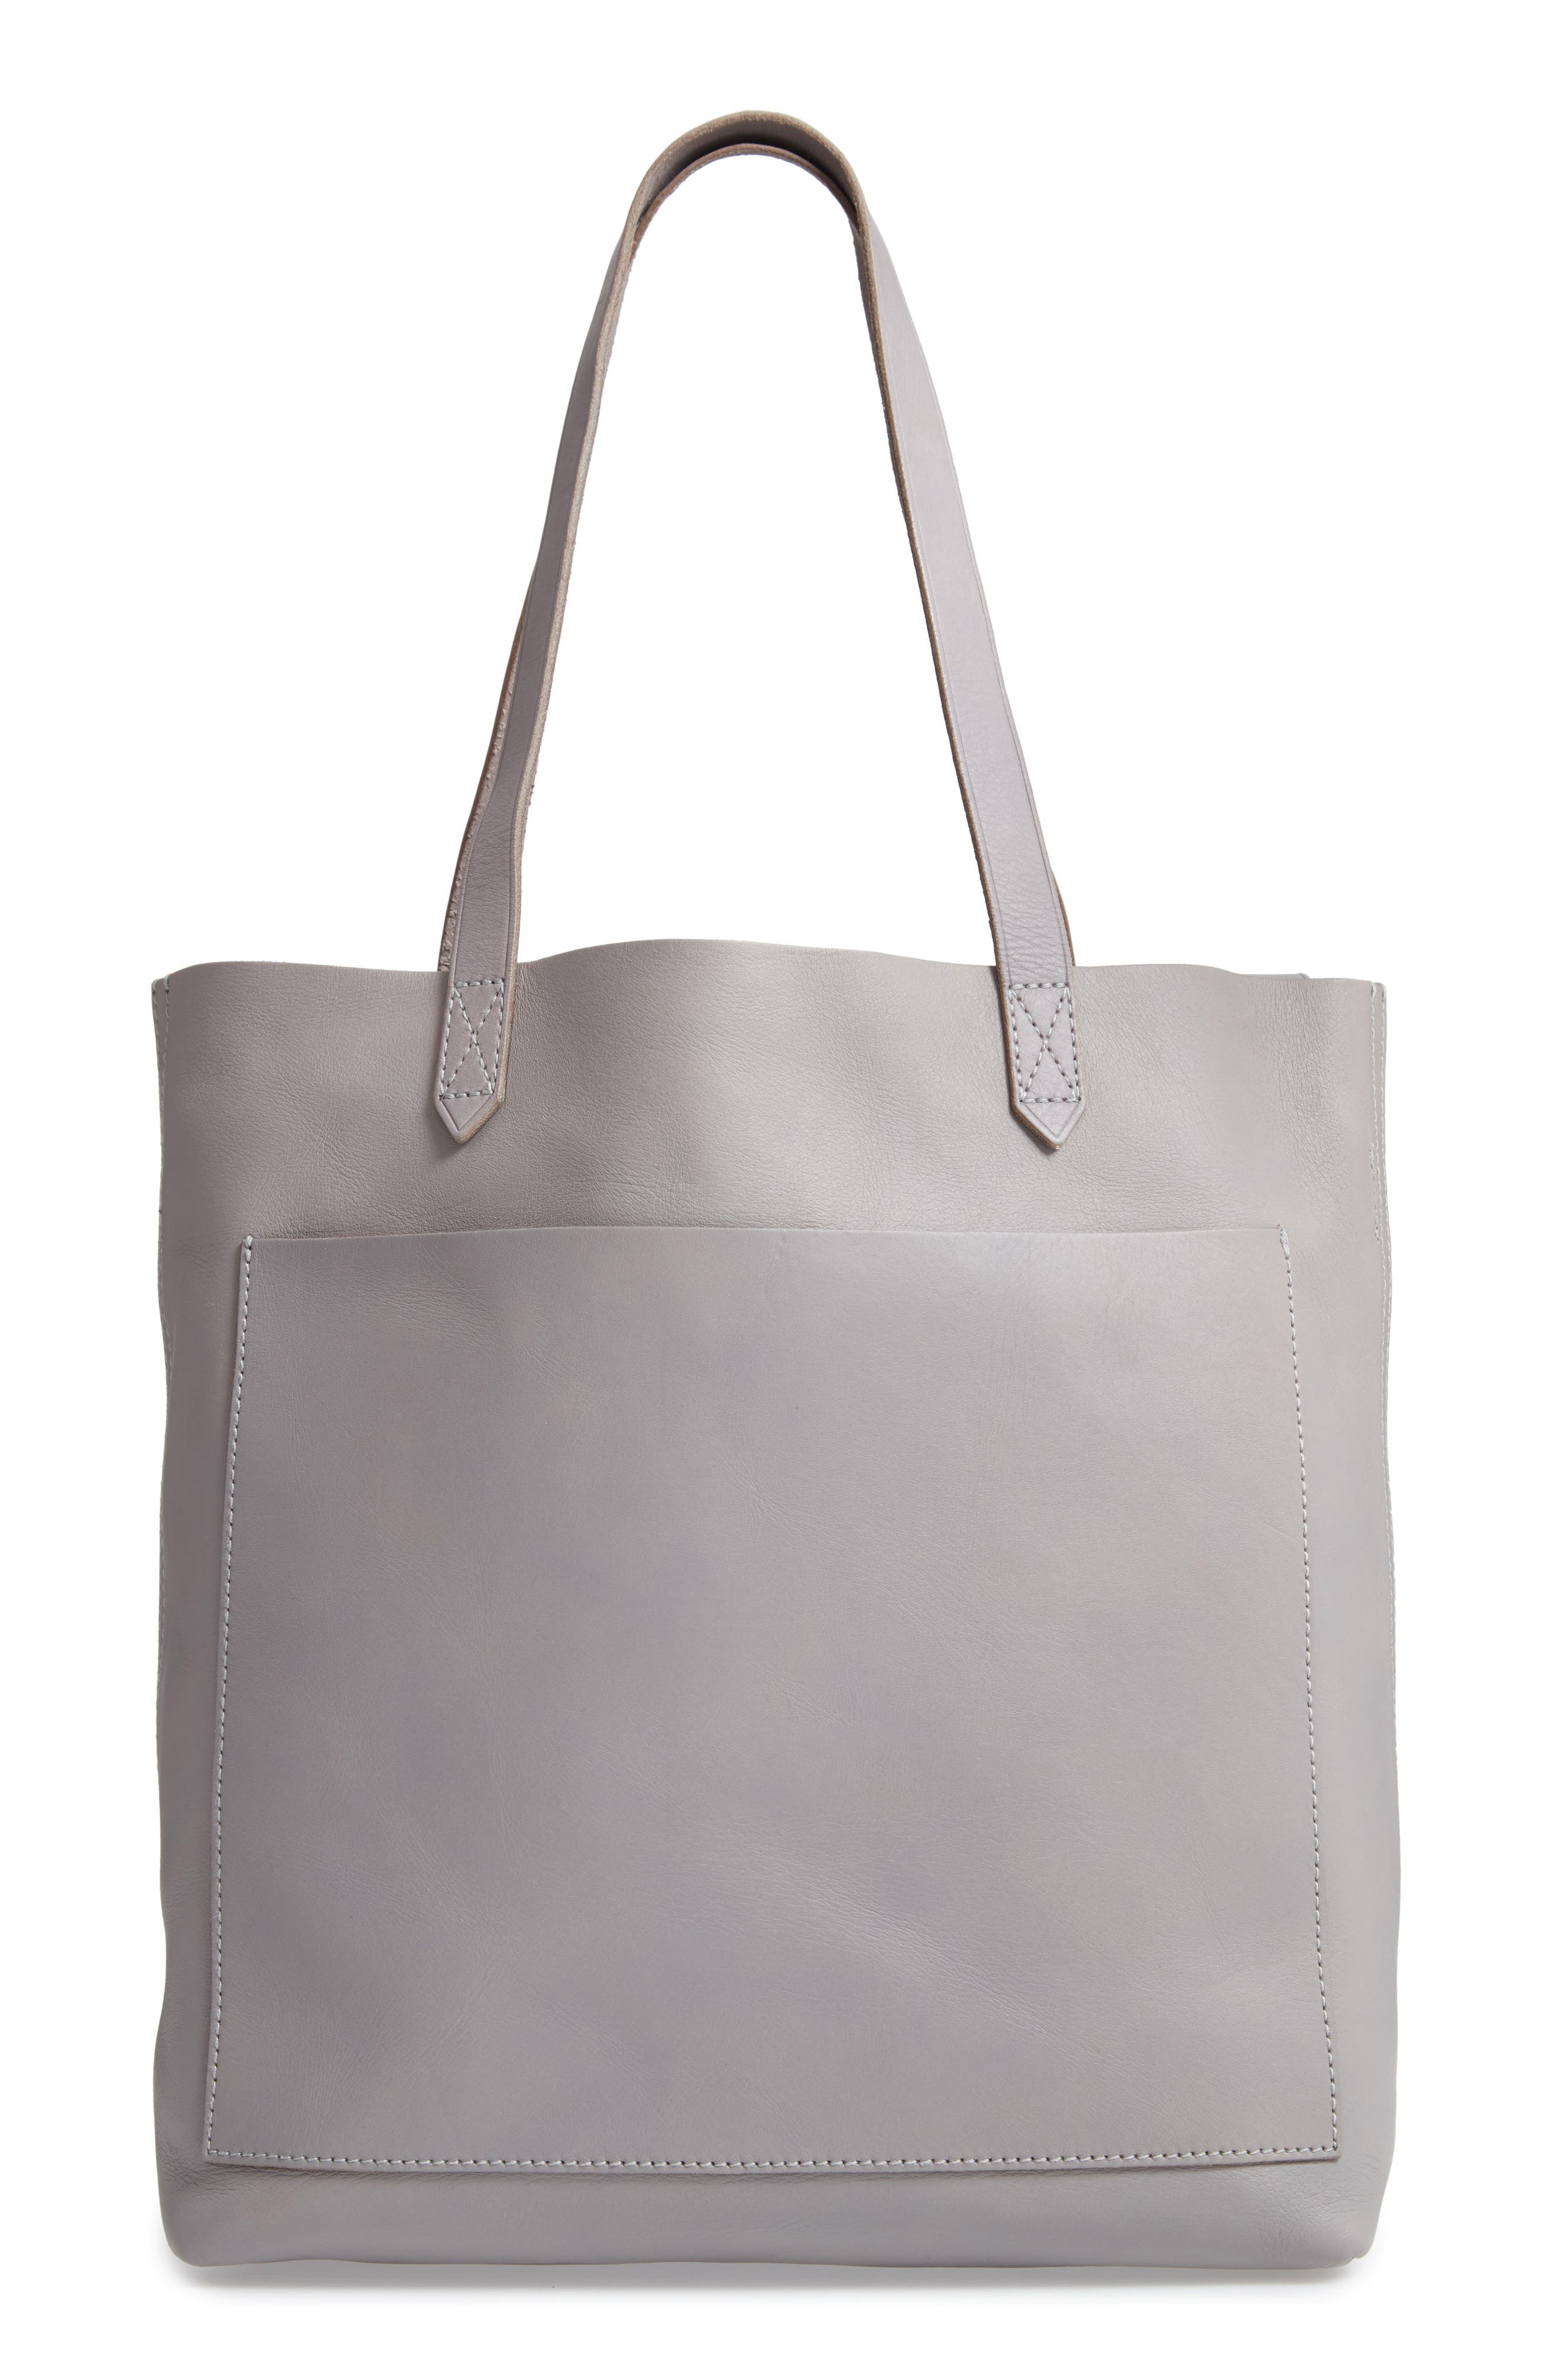 Medium Leather Transport Tote,                         Main,                         color,